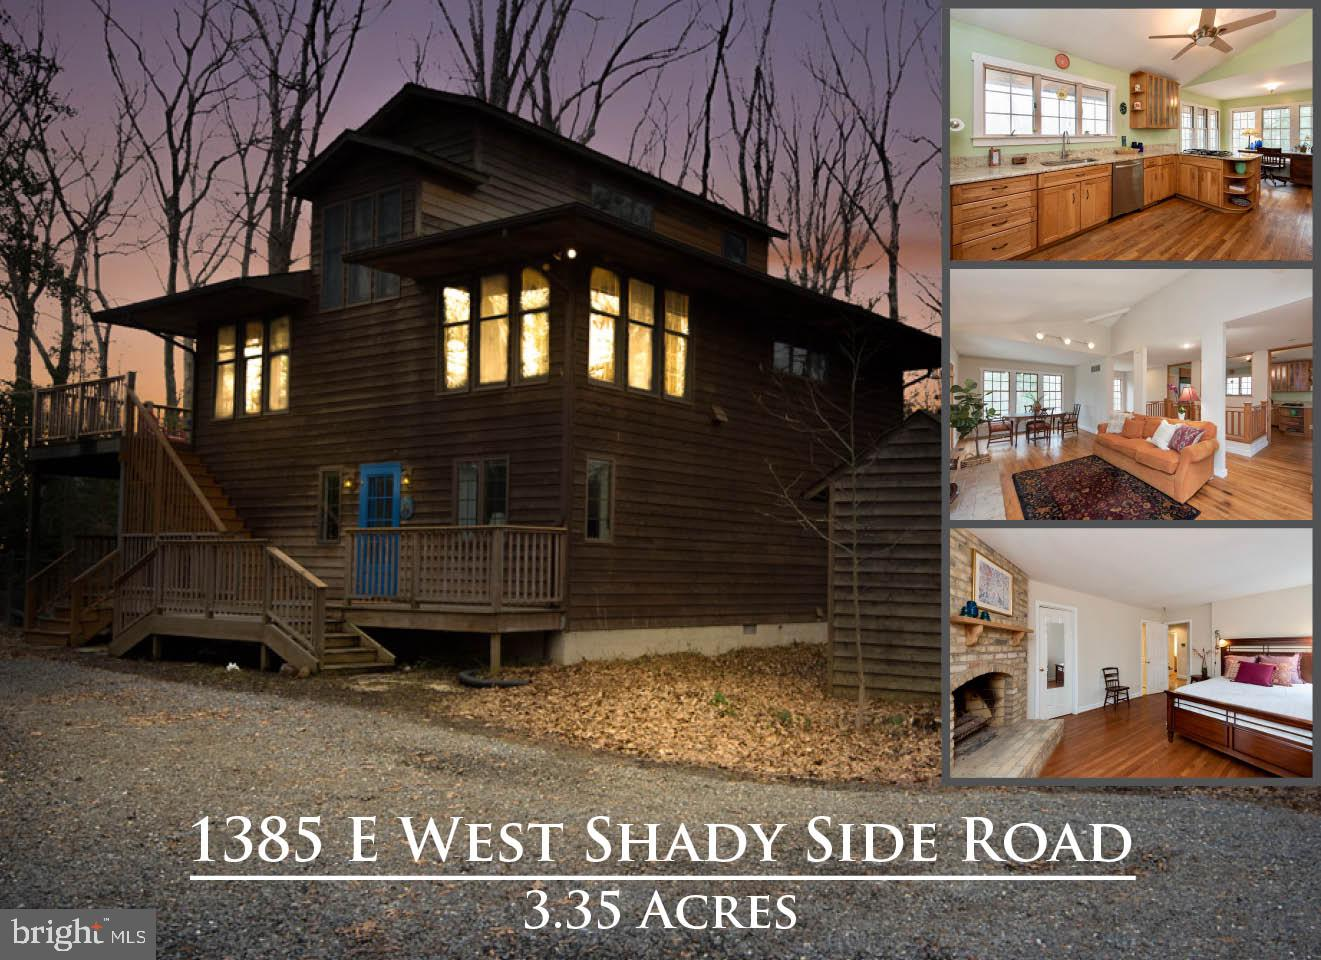 1385 E WEST SHADY SIDE ROAD, SHADY SIDE, MD 20764